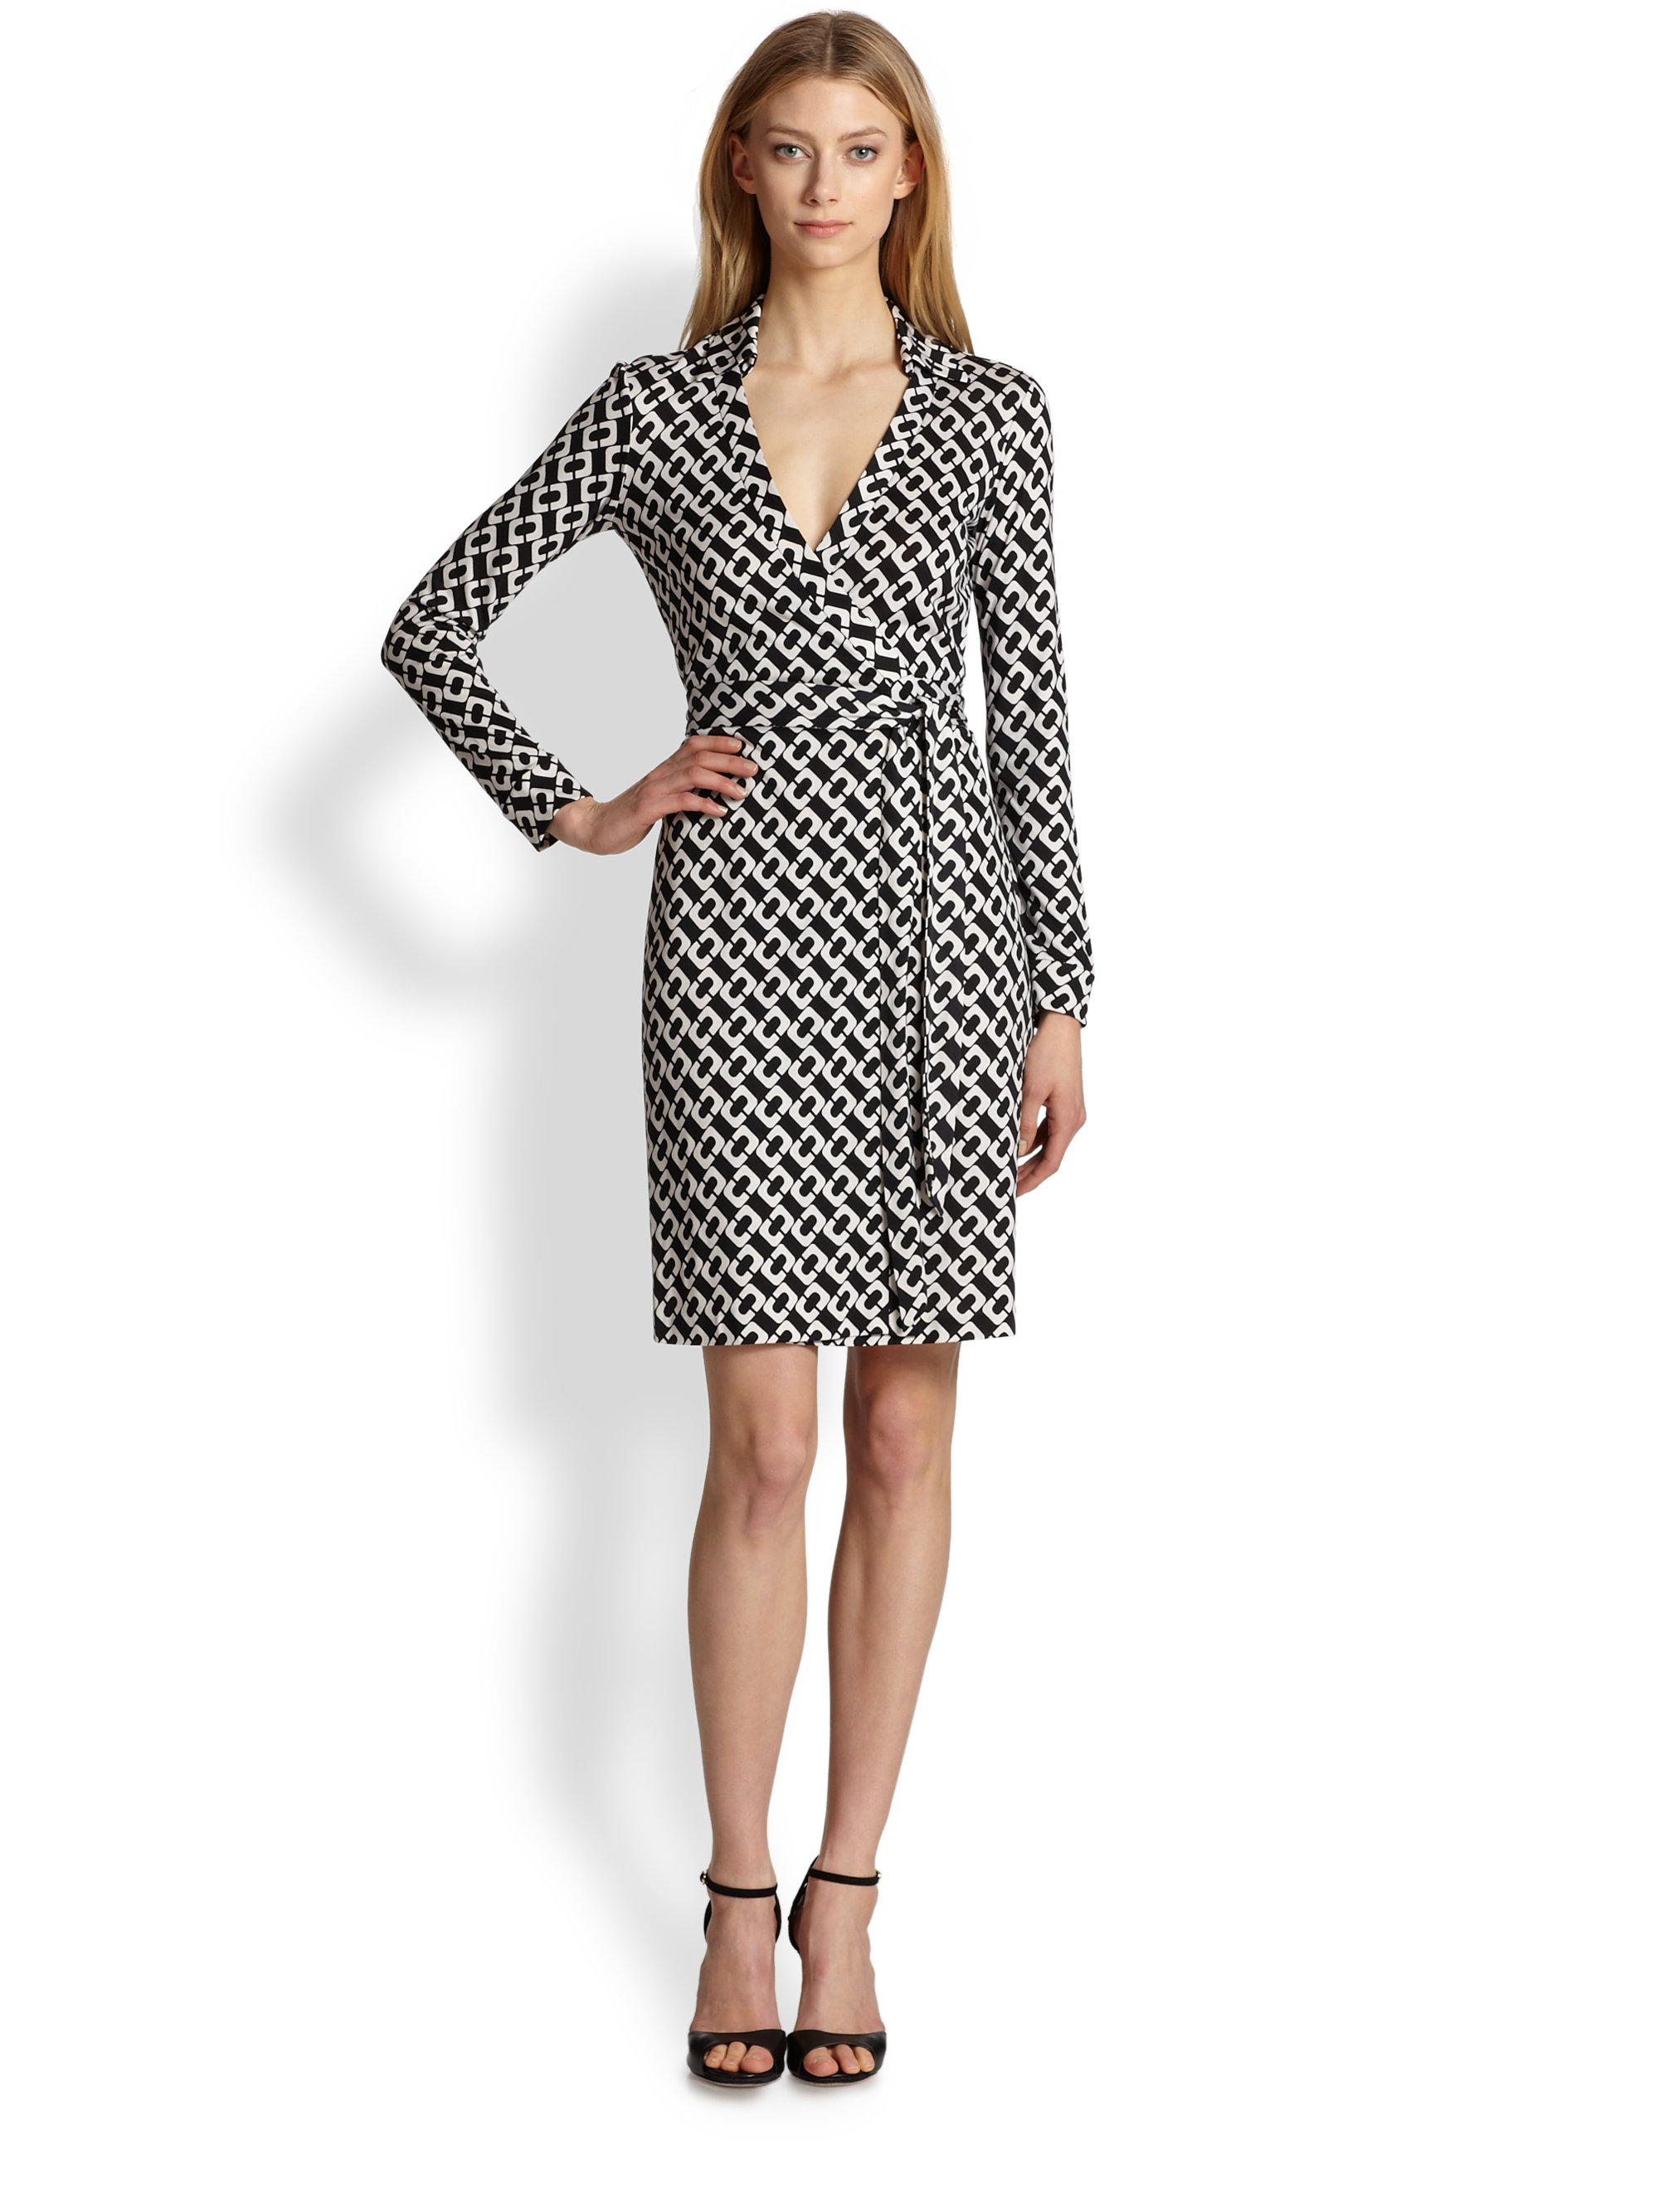 Dvf Wrap Dress Size 14 Sale View Fullscreen